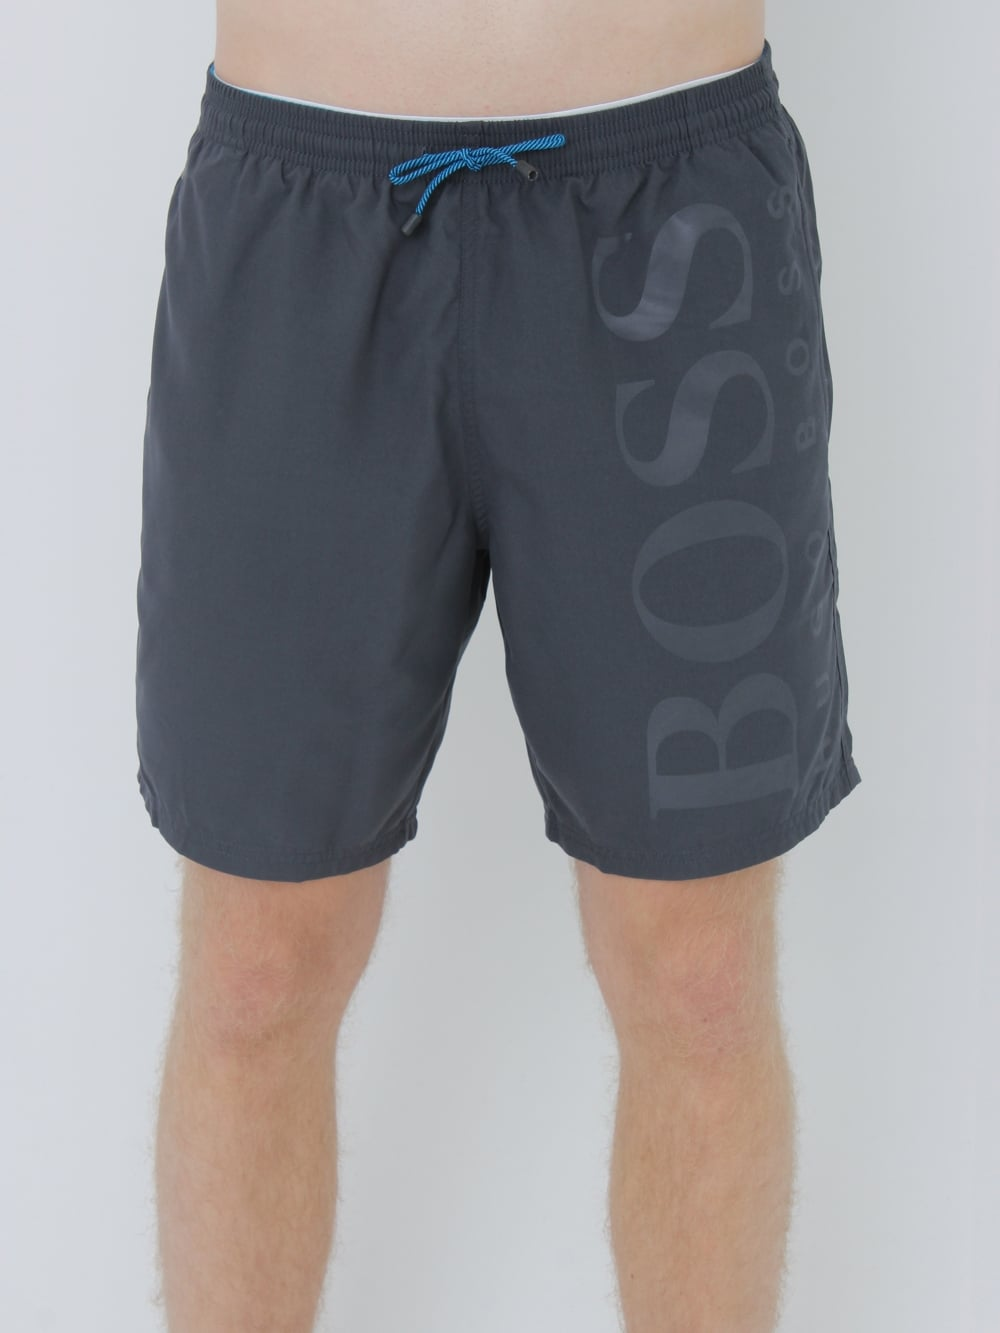 3c8dadbca355 HUGO BOSS BOSS Hugo Boss Orca Swim Shorts in Black - Northern Threads